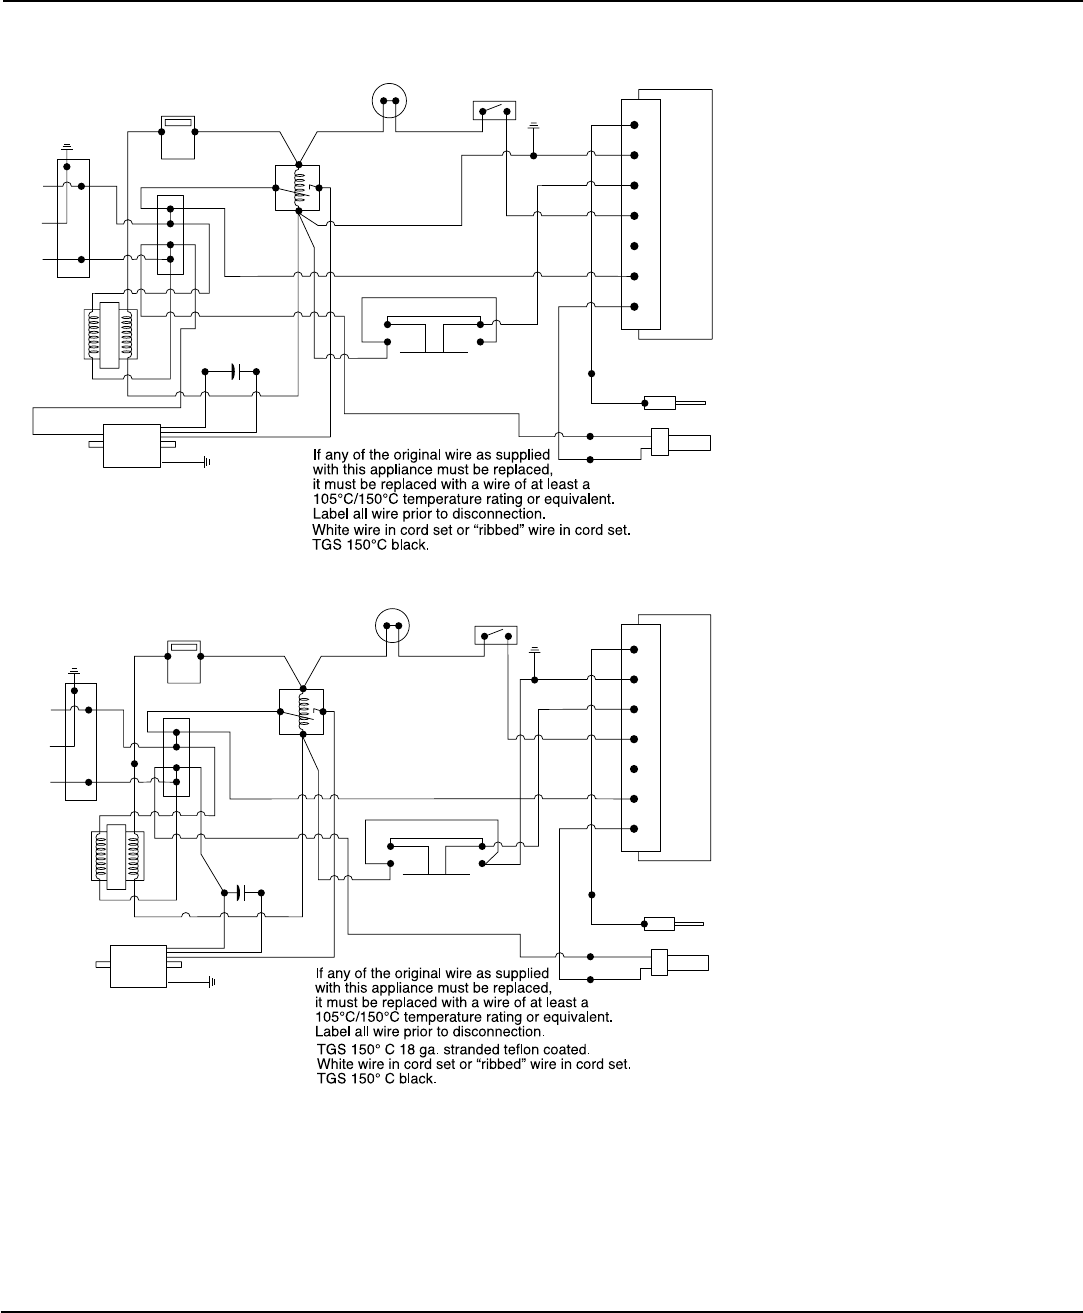 ae40a9ab 3ce6 fed4 9185 e0c49bb68c8e bg13 williams gas valve wiring,gas free download printable wiring diagrams  at cos-gaming.co